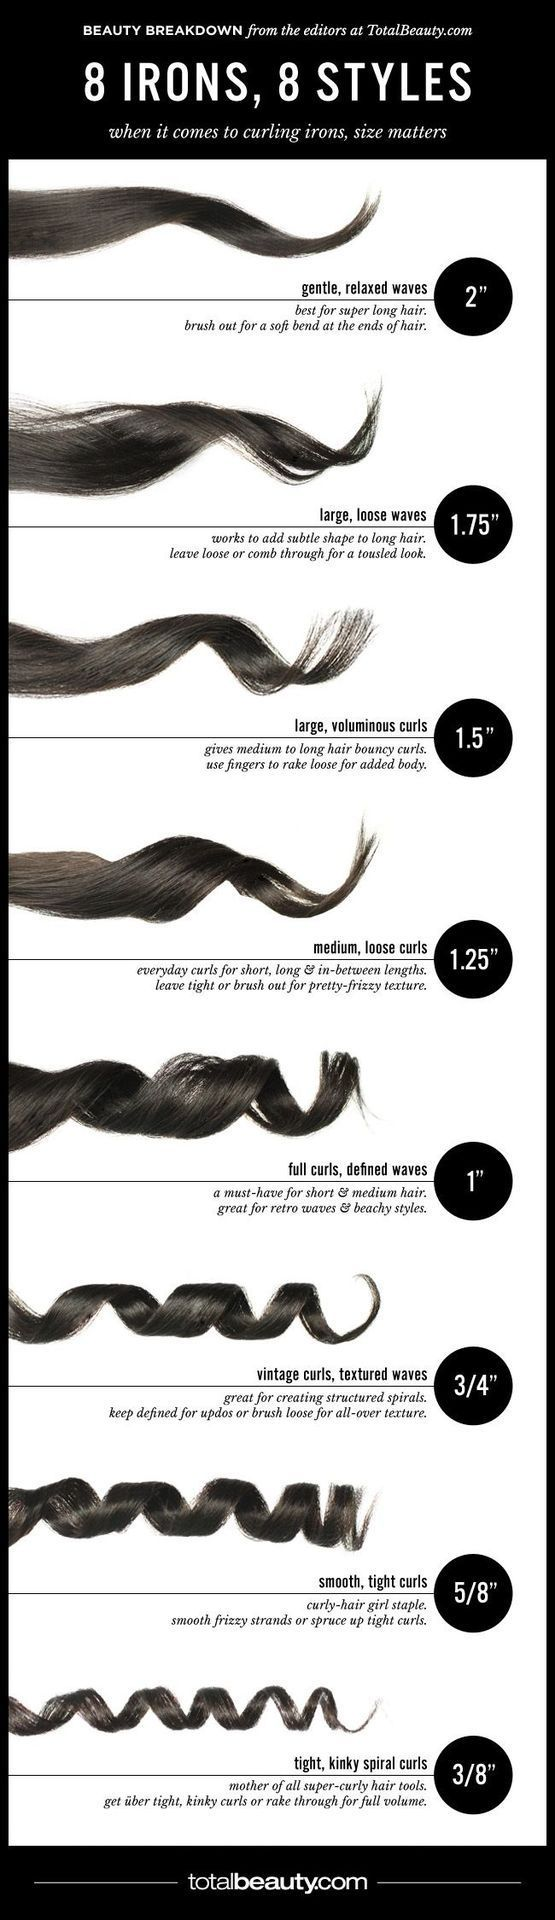 8 Styles Long Hair Styles Curling Iron Hairstyles Curled Hairstyles